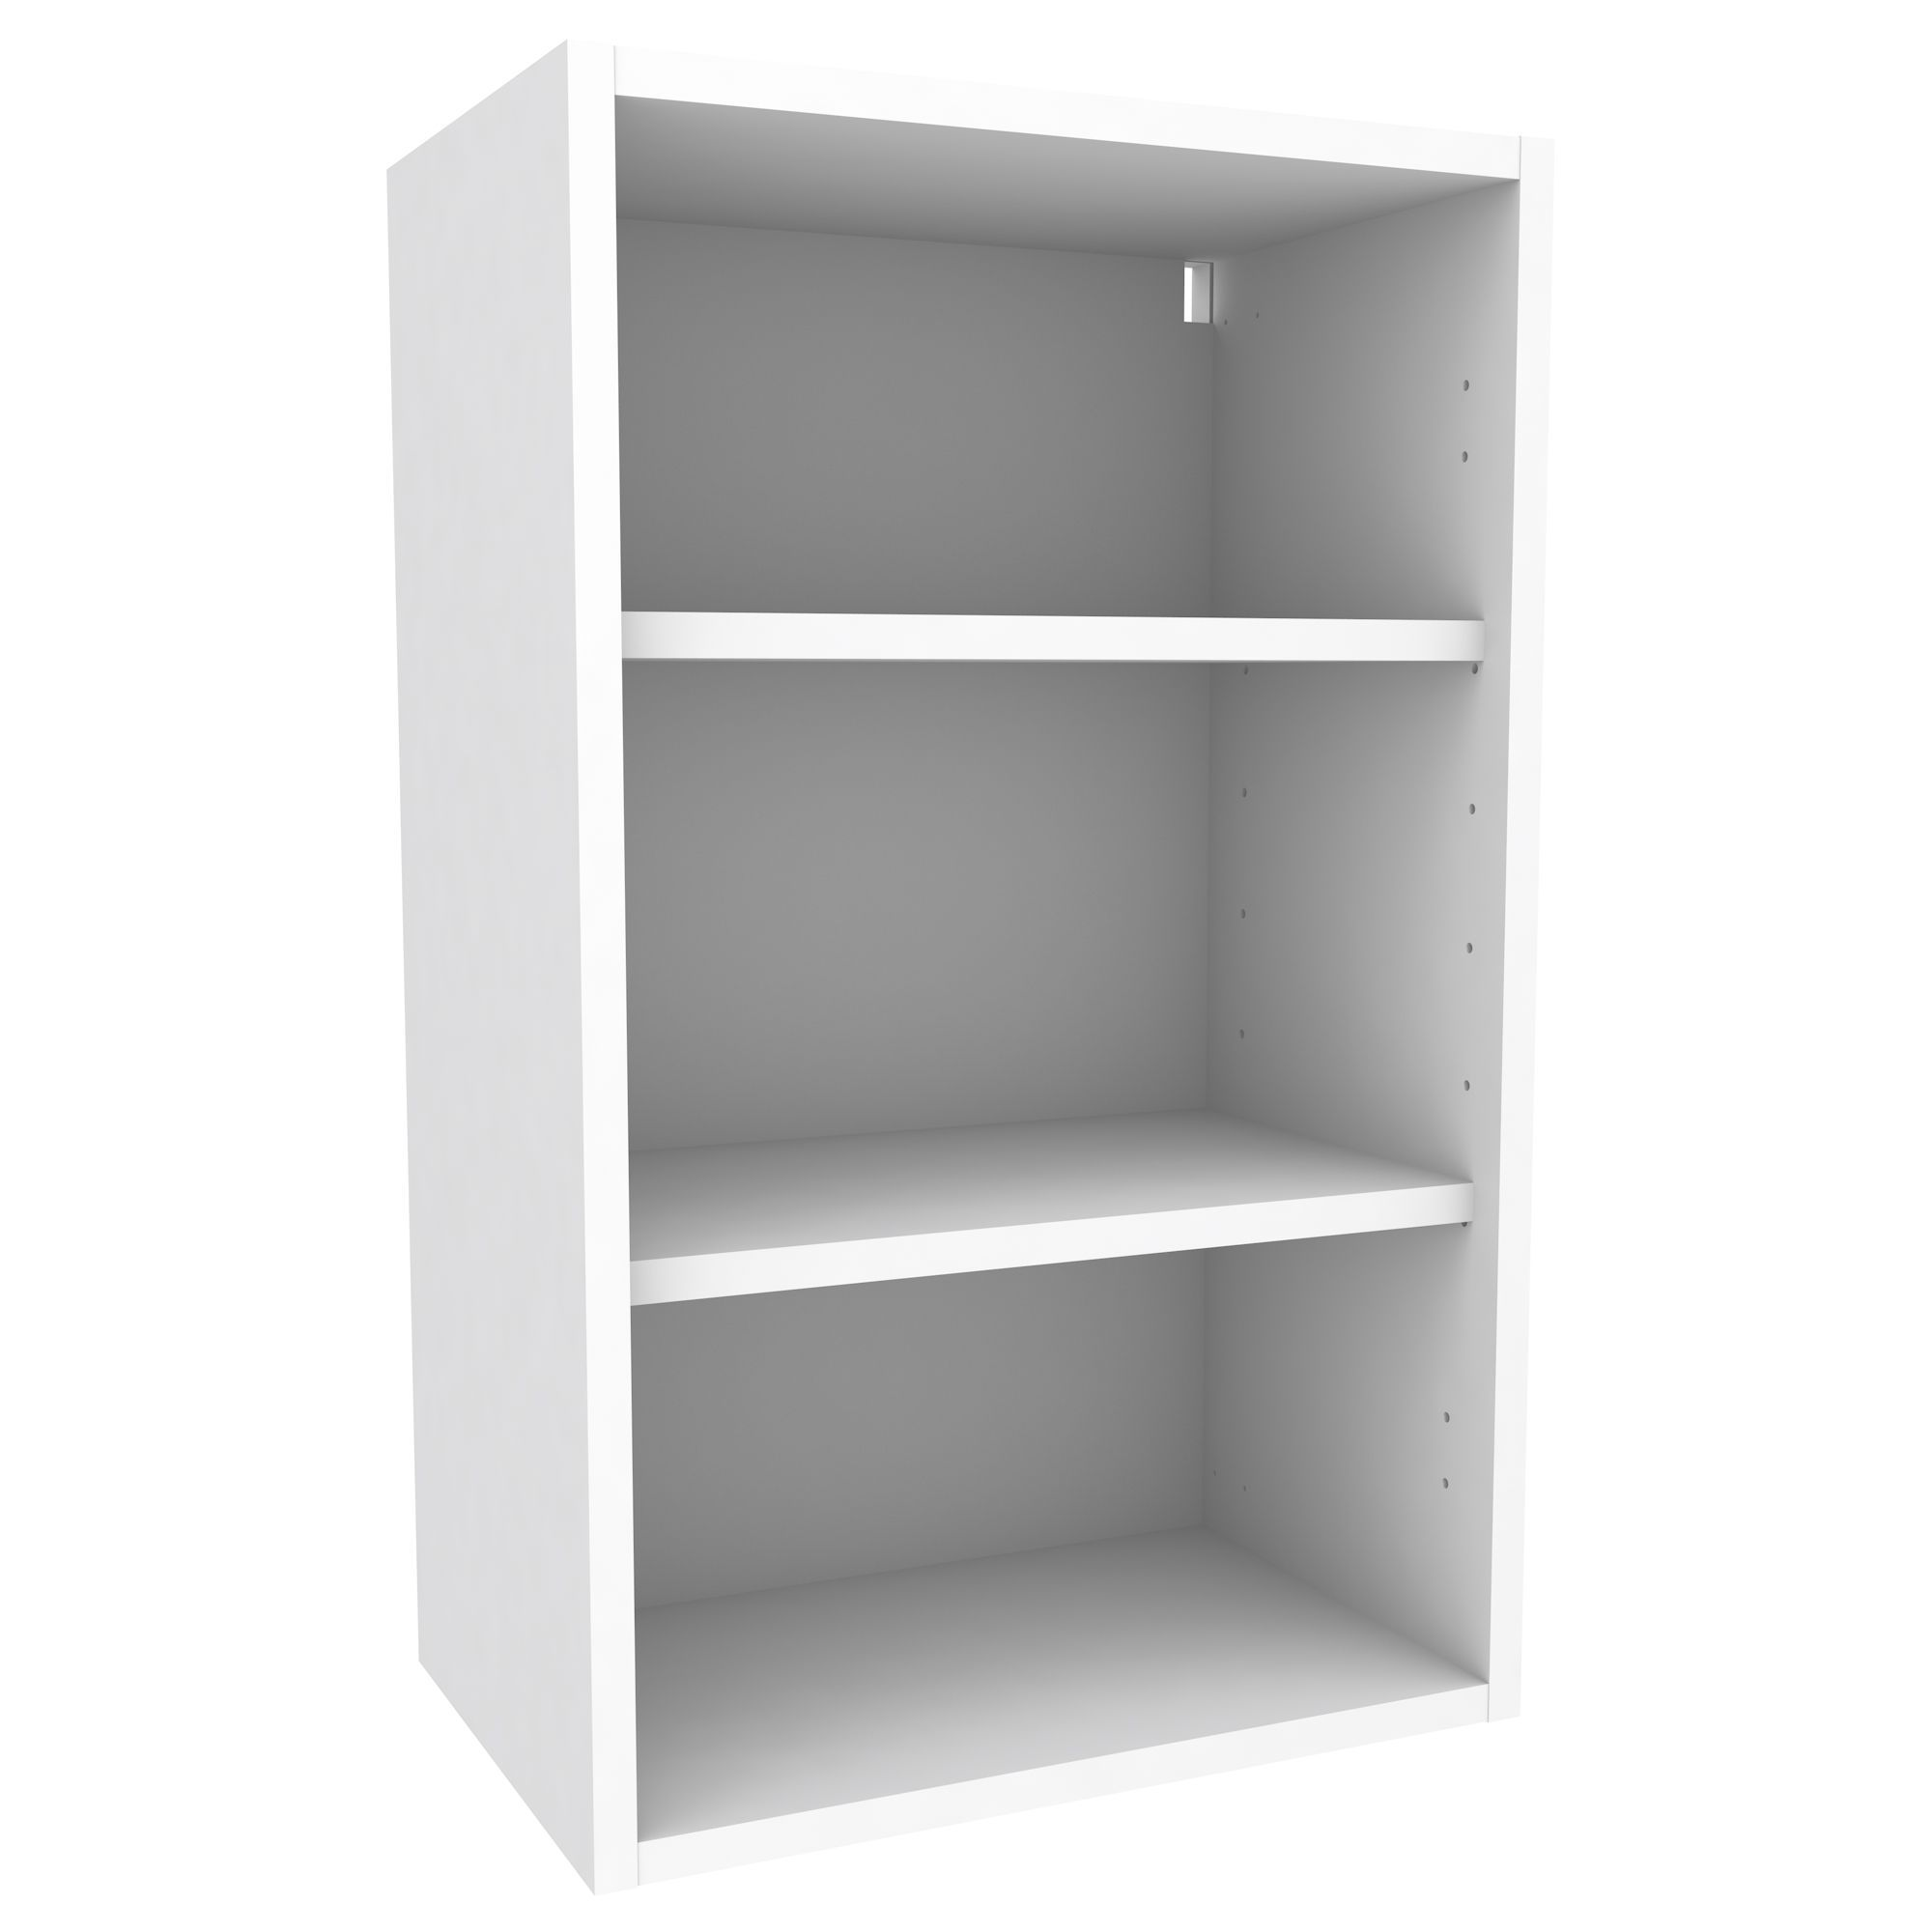 Cooke & Lewis White Standard Wall Cabinet (w)450mm  Departments  Diy At  B&q